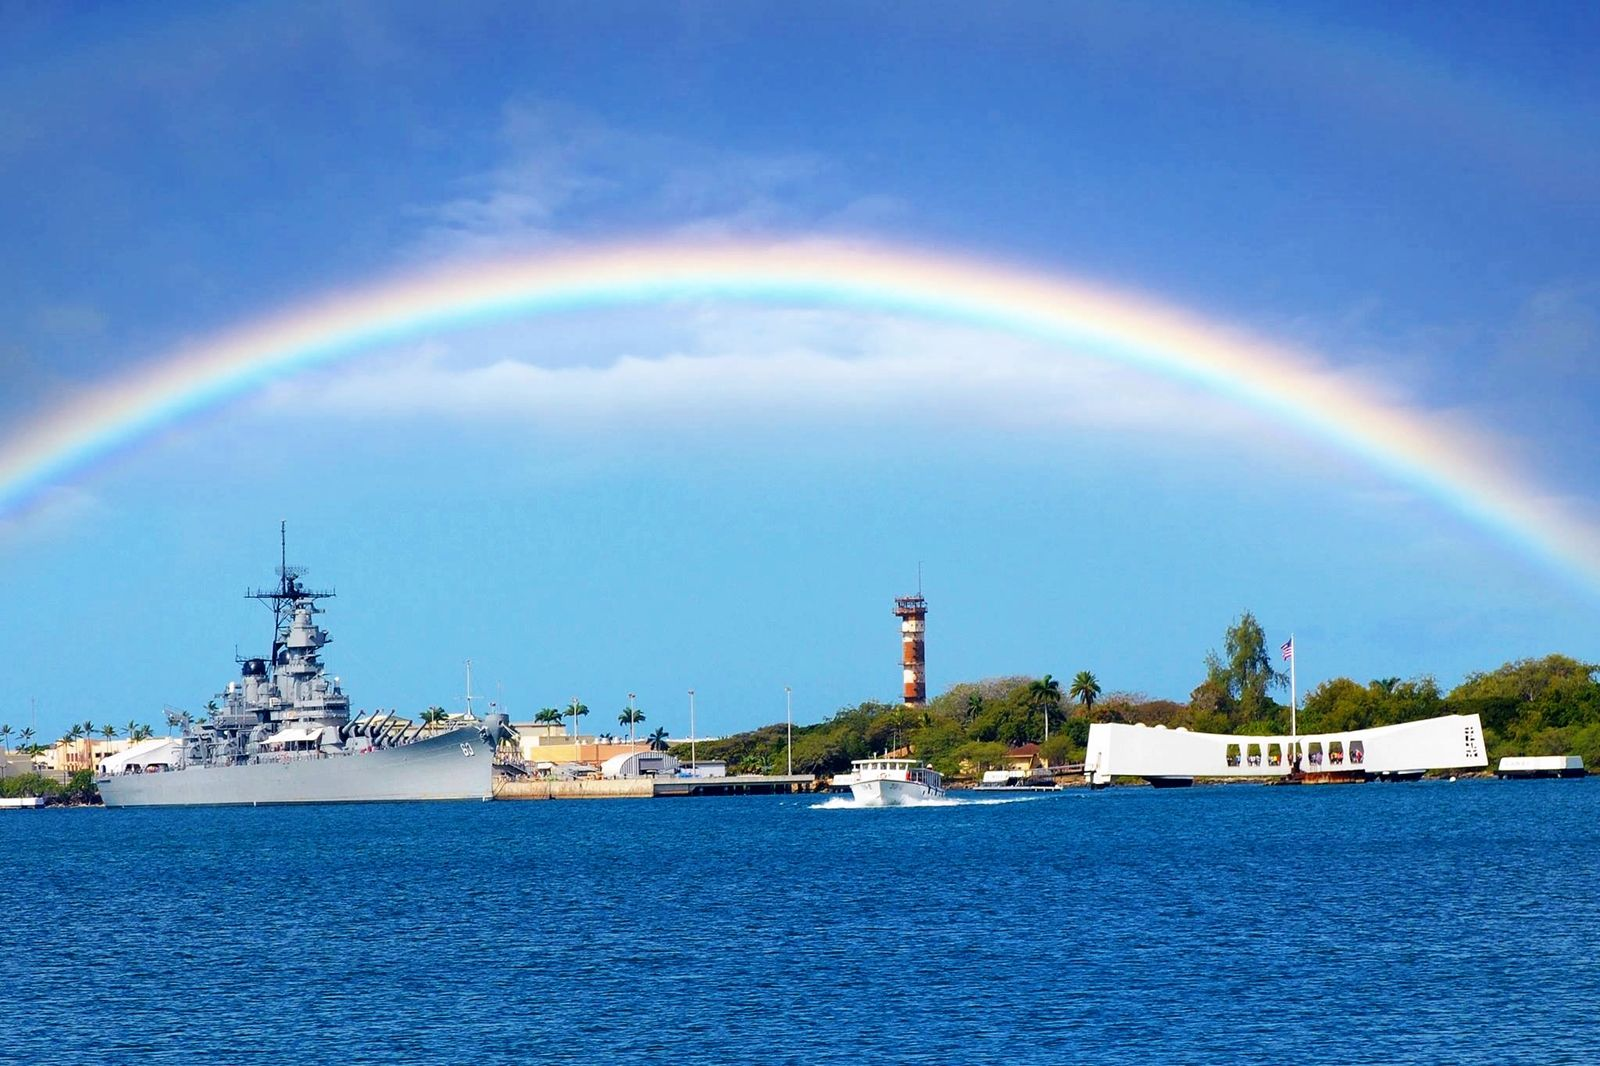 Such a wonderful picture of the USS Arizona Memorial, the